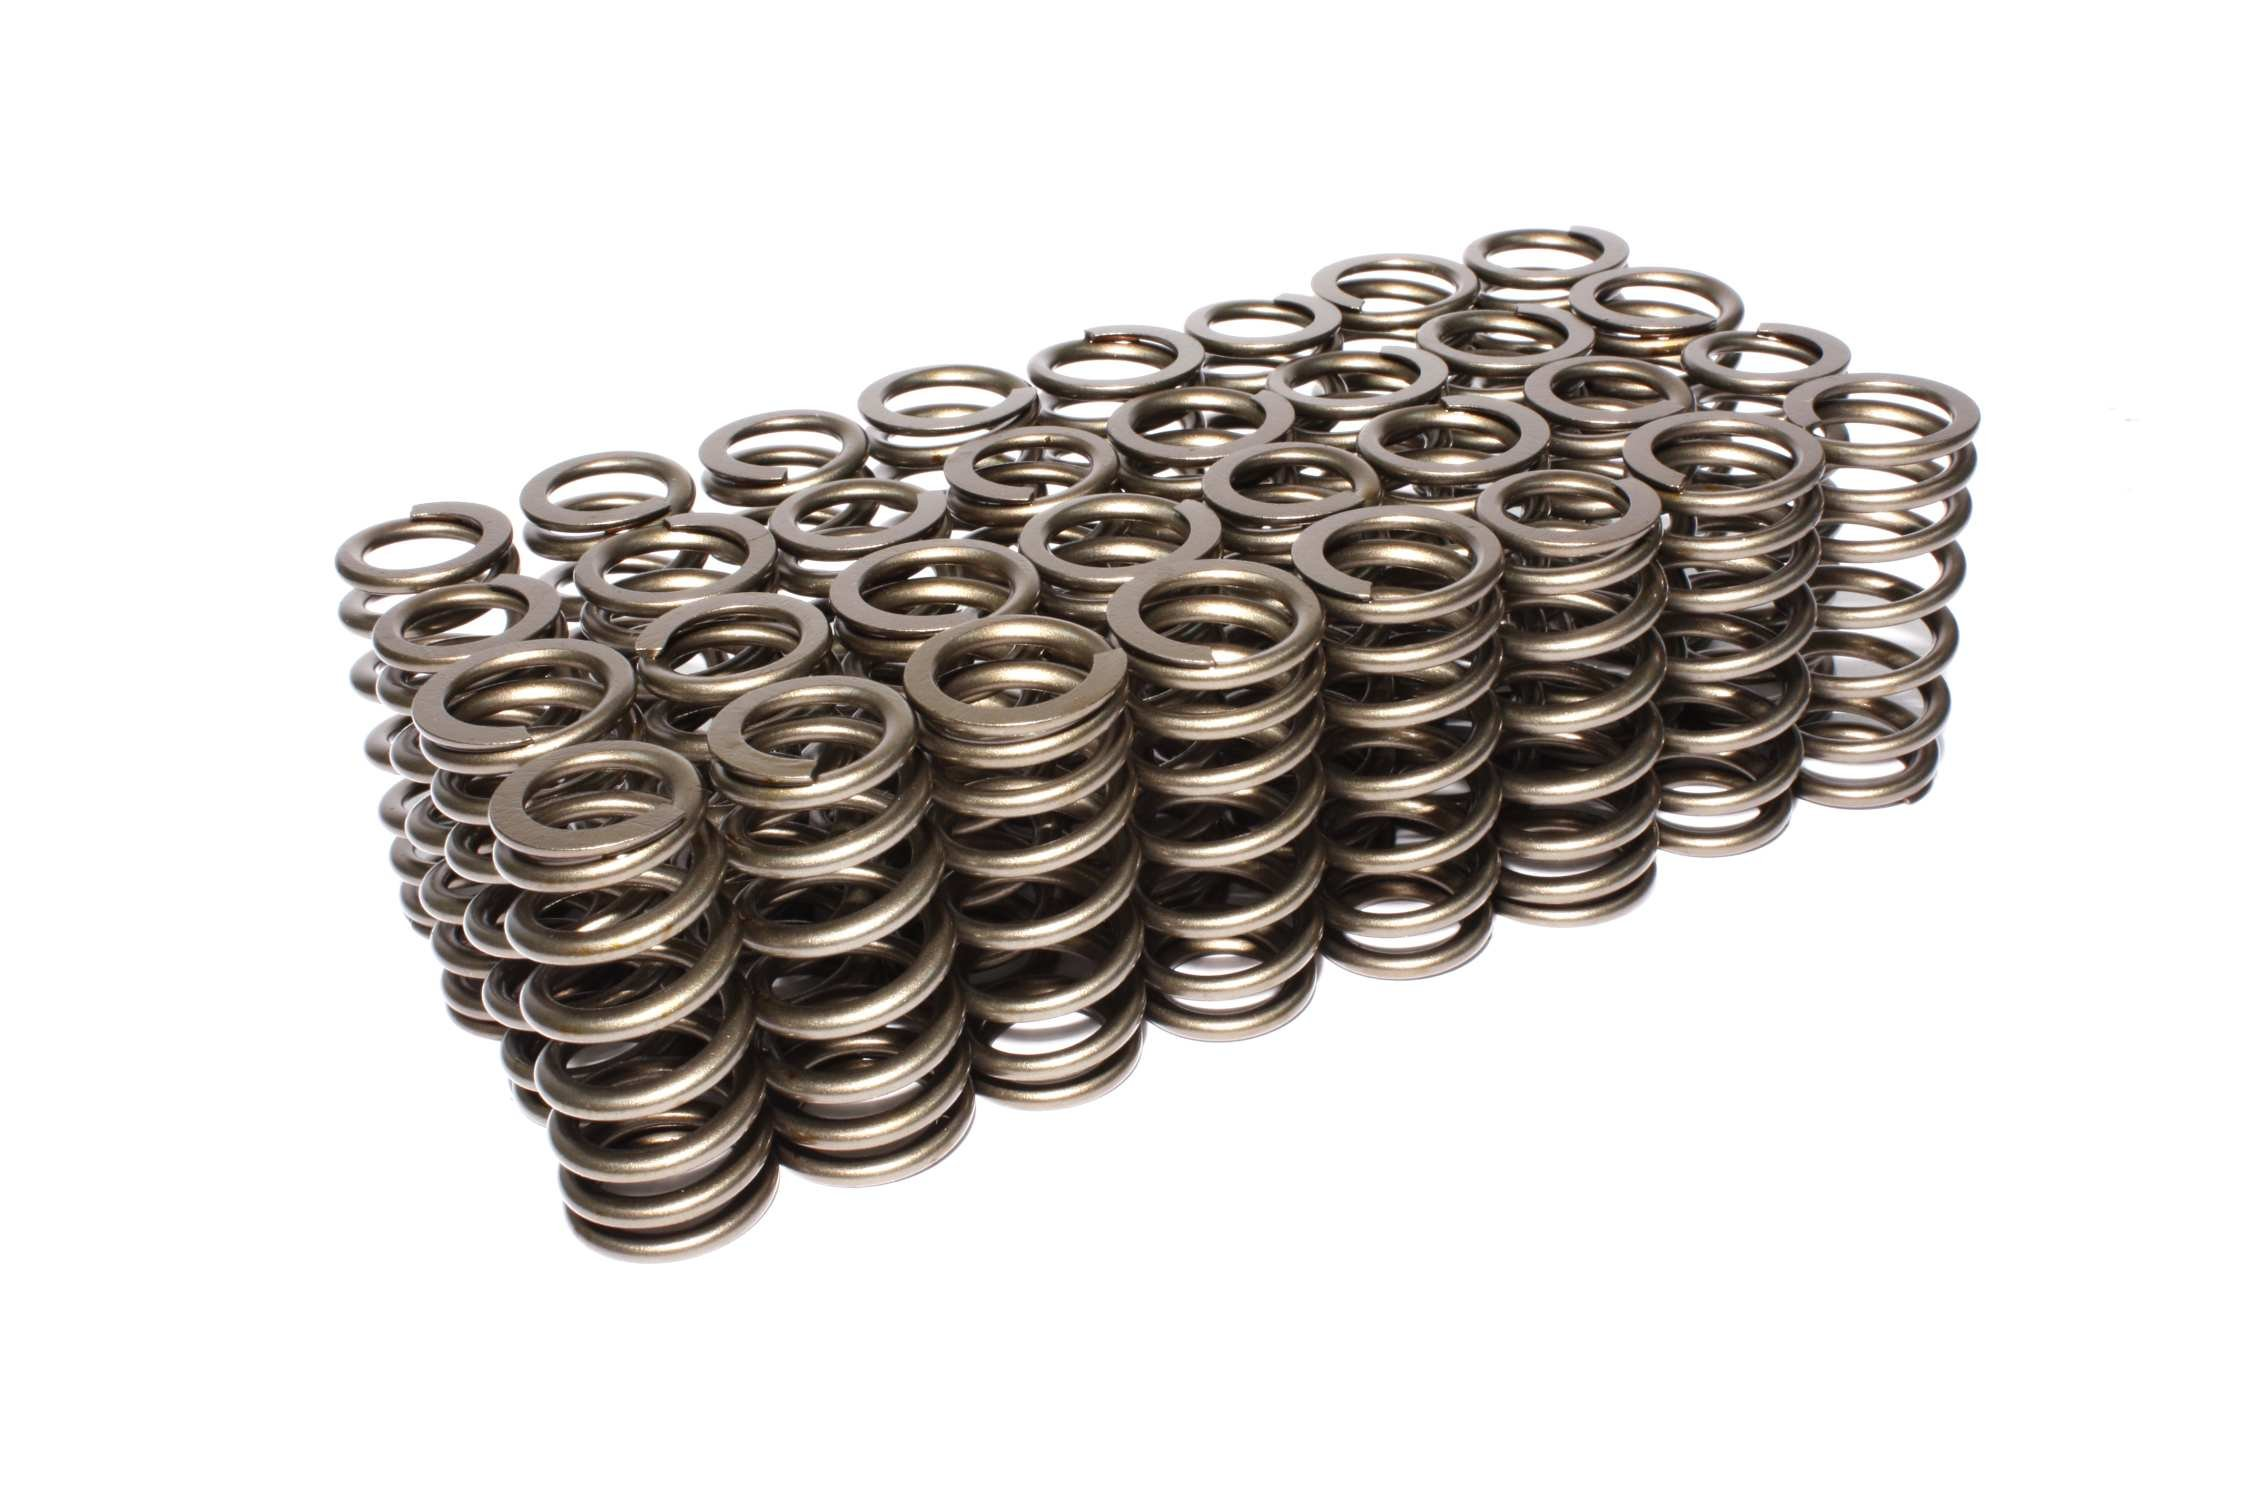 Competition Cams 26123-32 Beehive Valve Spring for Ford 4.6L and 5.4L Modular 4 Valve Engines